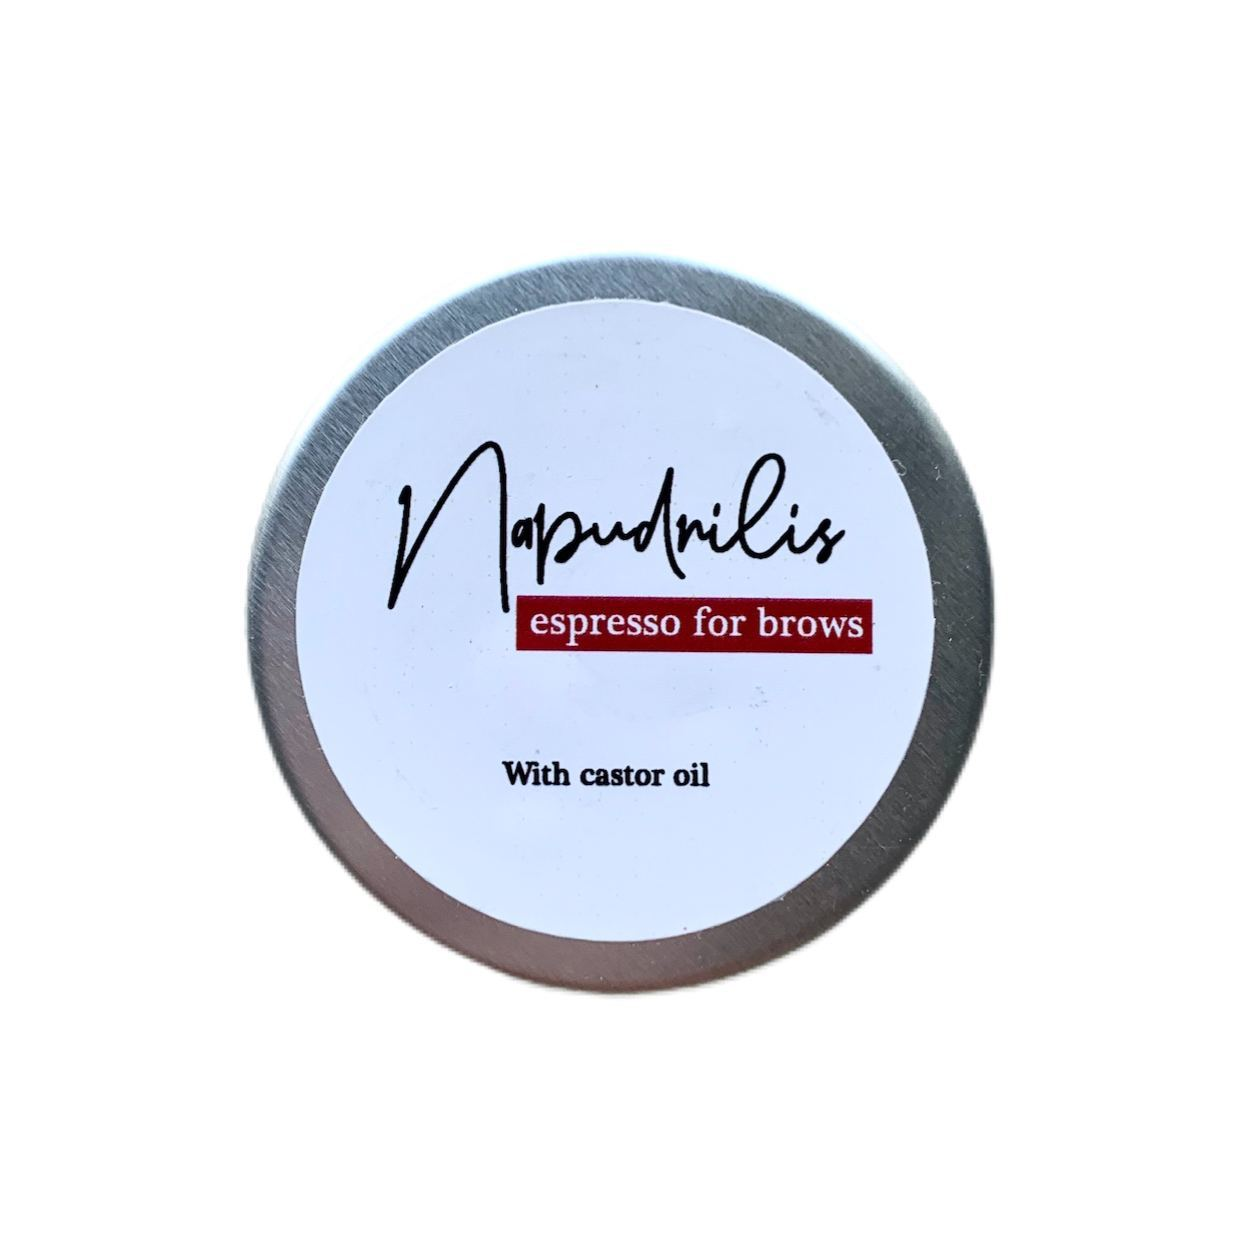 Мыло для бровей Napudrilis Espresso For Brows